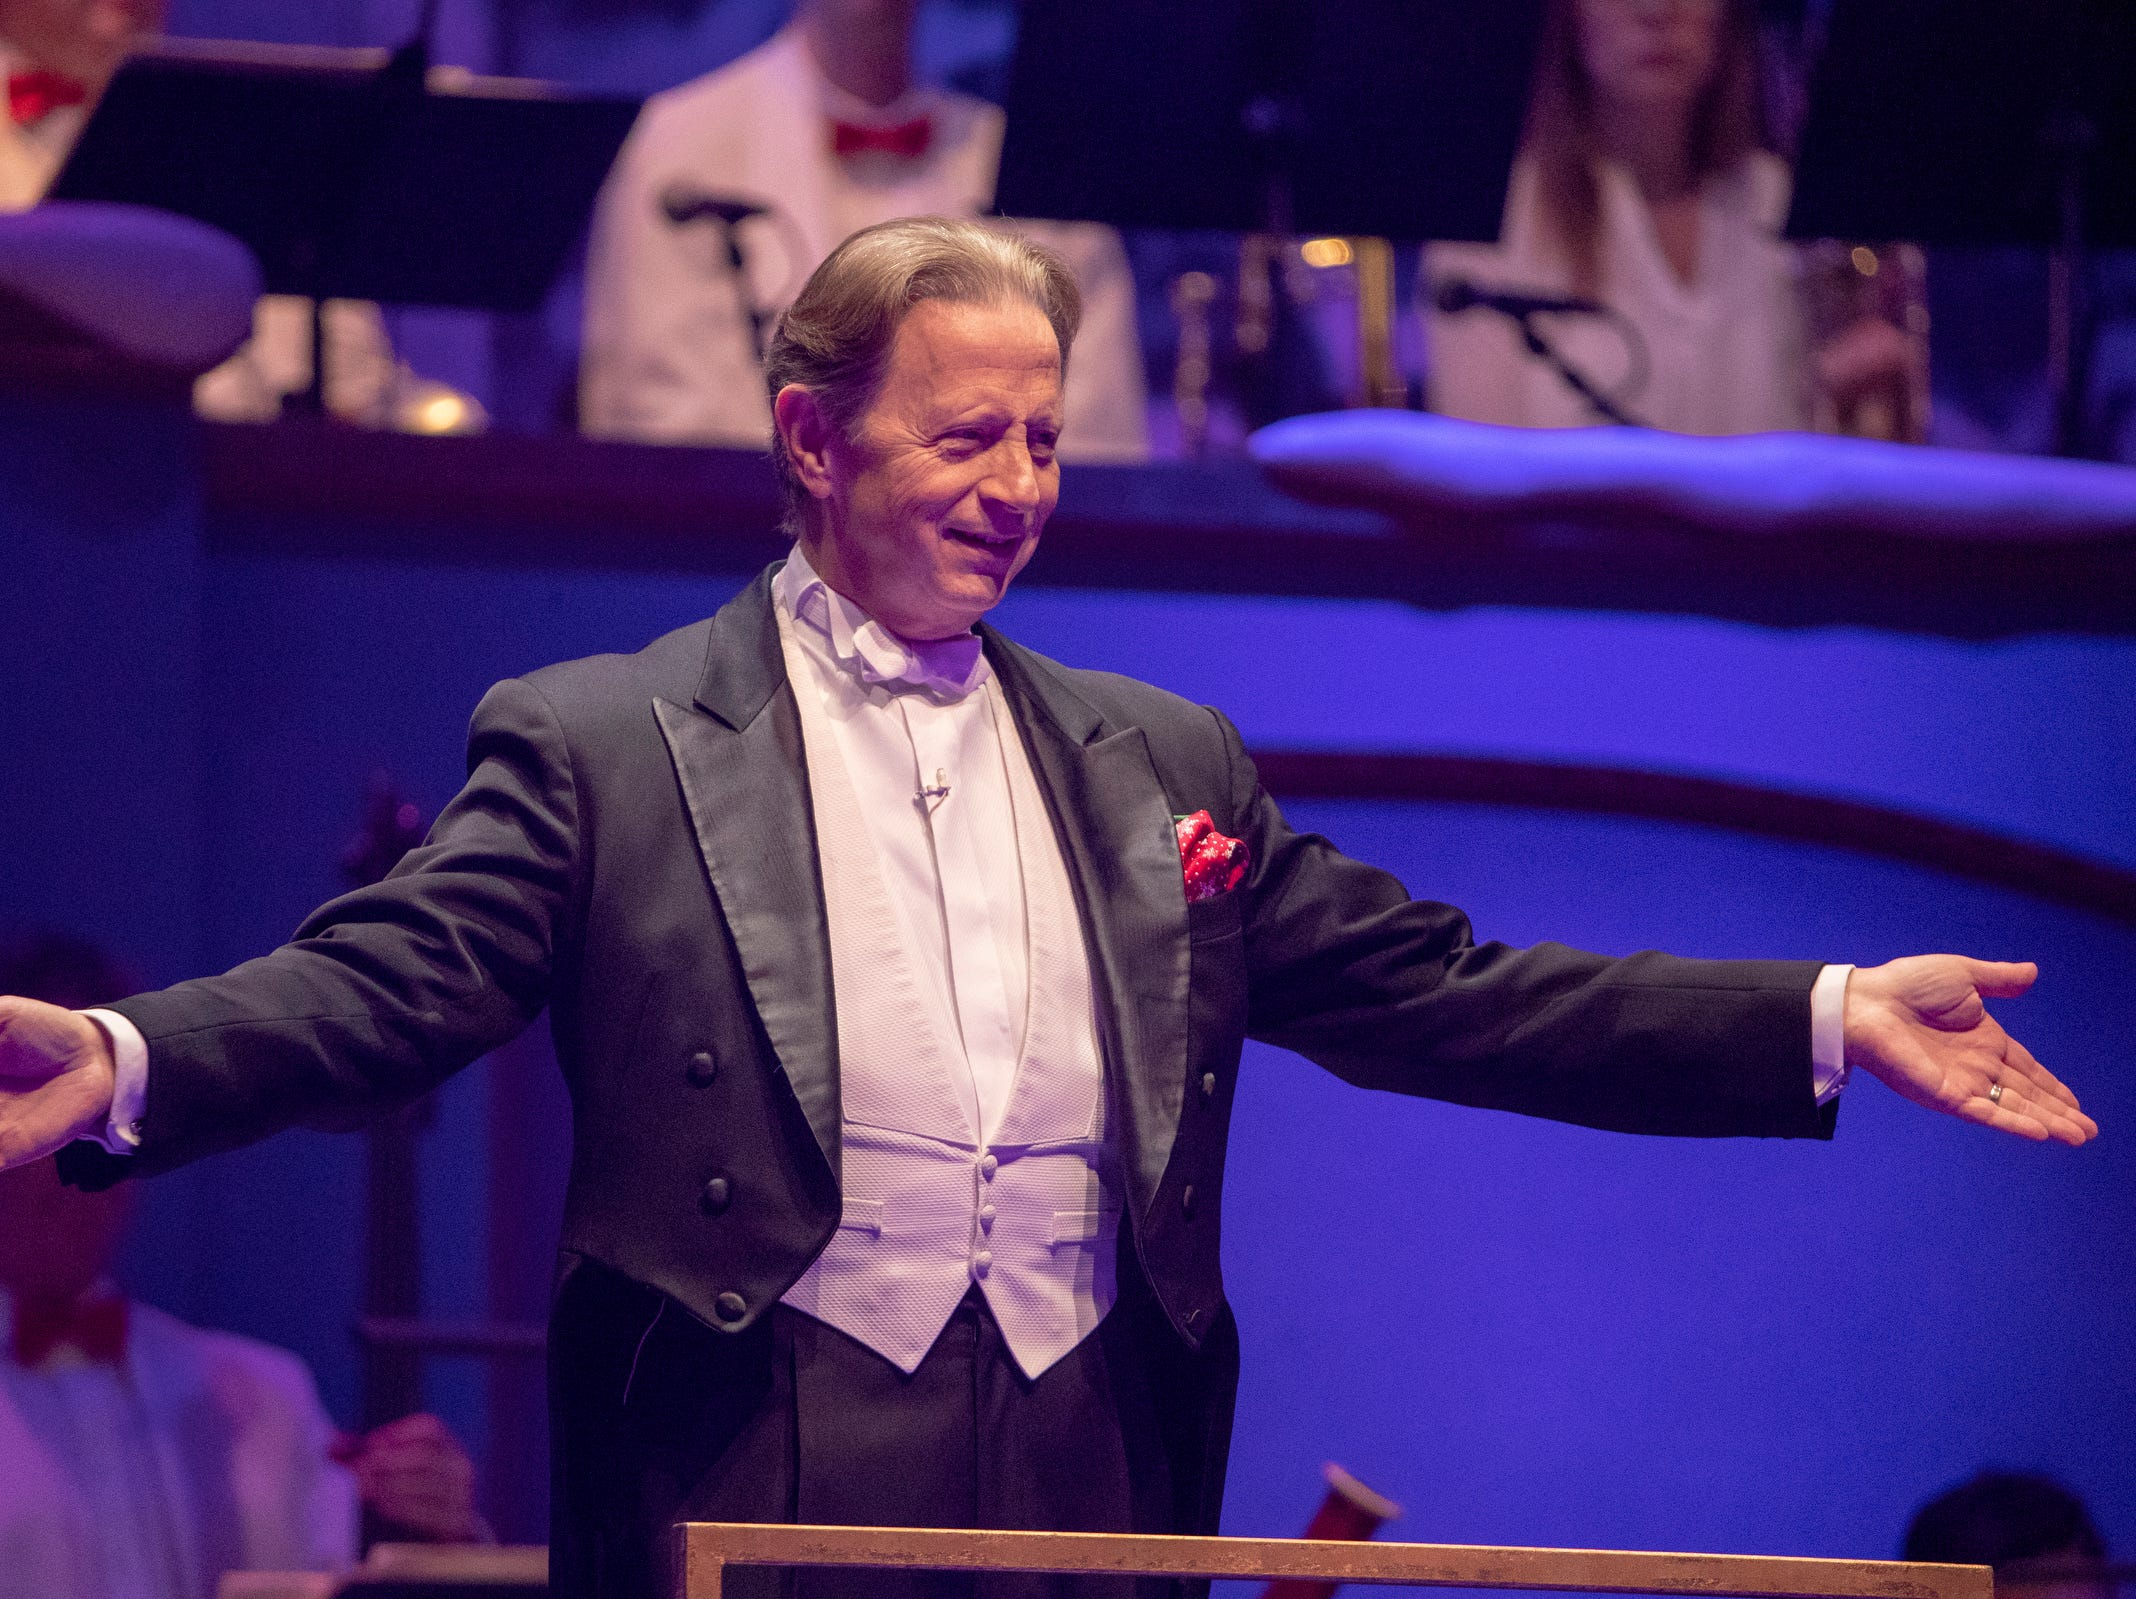 Jack Everly, Conductor, at Yuletide Celebration, showcasing the Indianapolis Symphony Orchestra, at Hilbert Circle Theater, Indianapolis, Sunday. Dec. 23, 2018. The extravaganza features dancing, holiday songs, and skits.